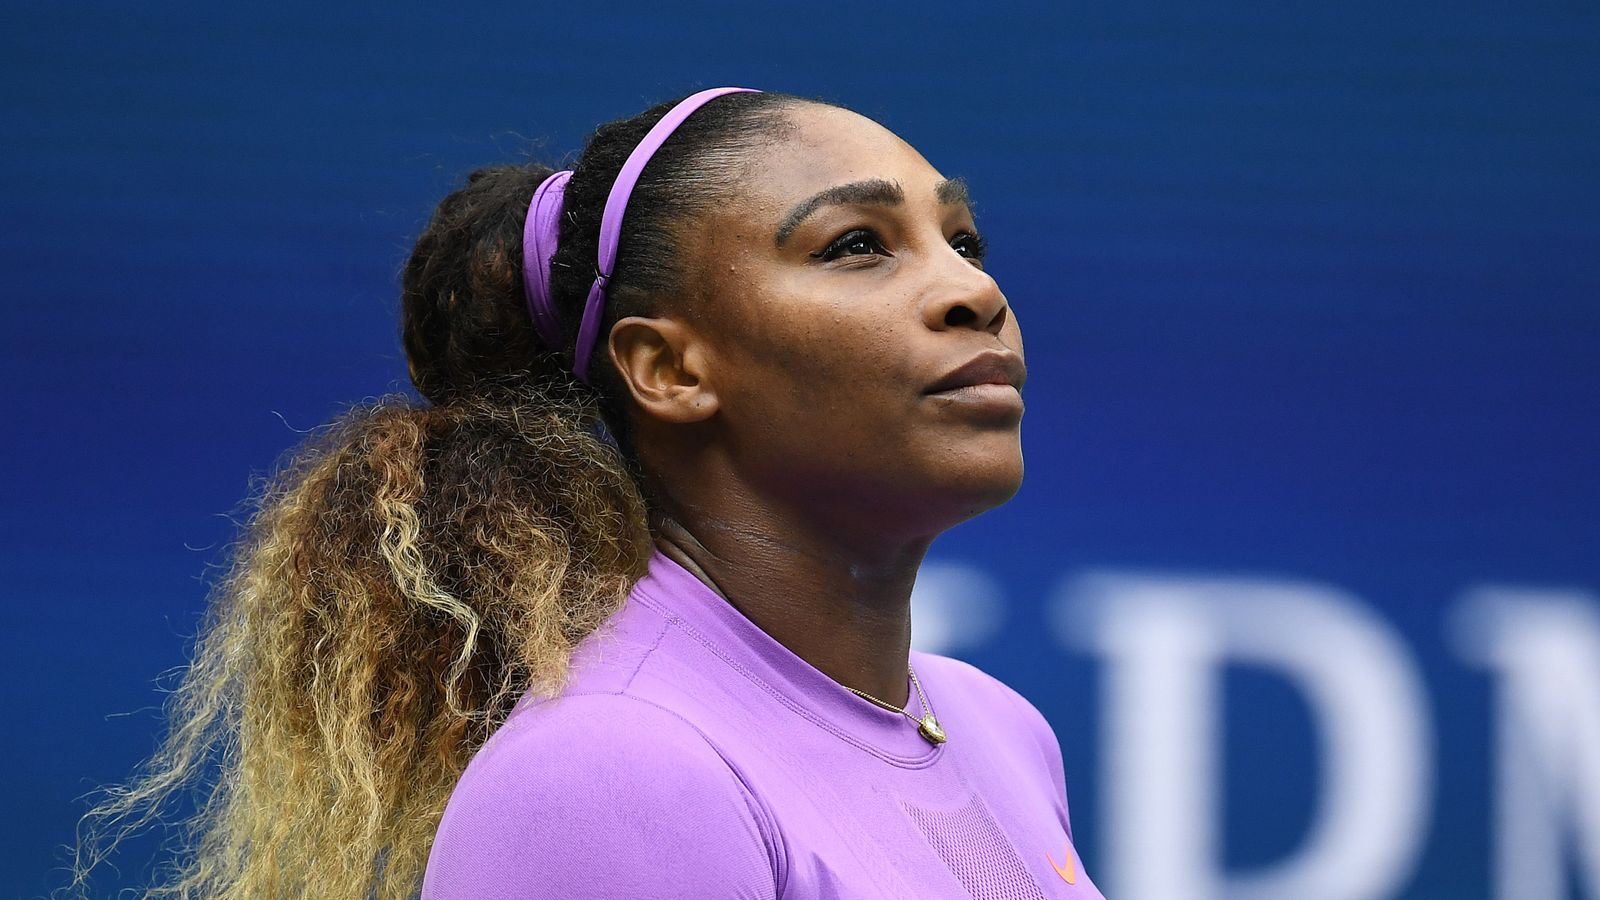 Serena Williams' Husband Asks Reddit to Replace Him with a Black Candidate